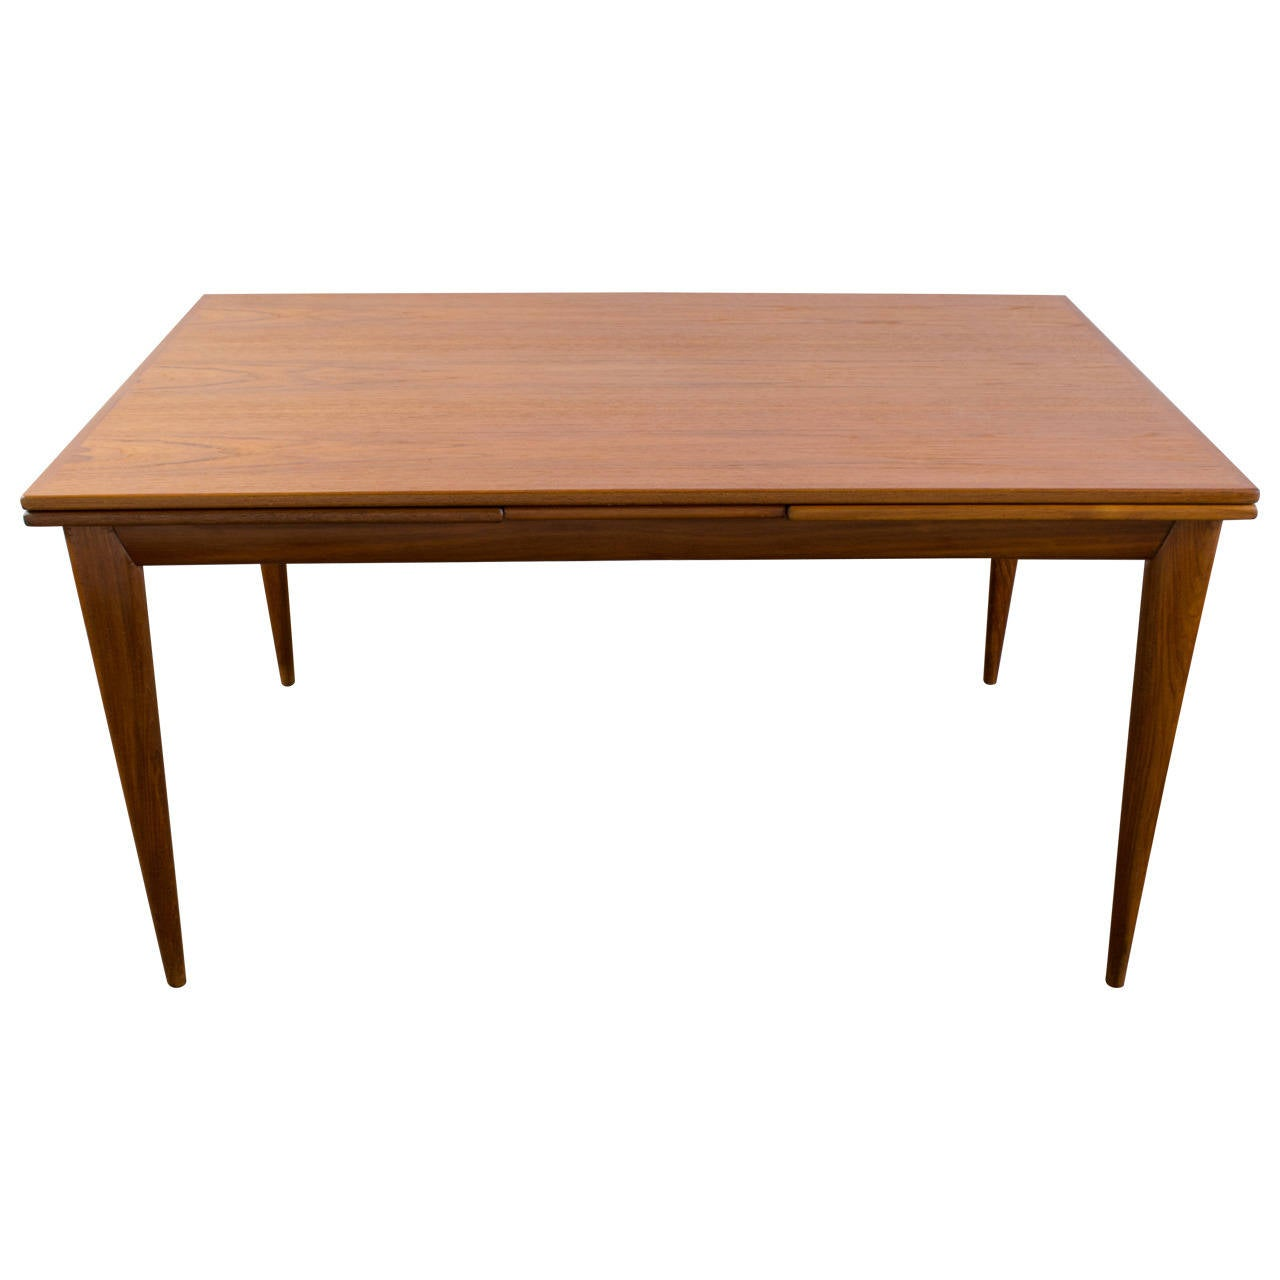 Danish Modern Teak Dining Table With Leaves By J L Moller